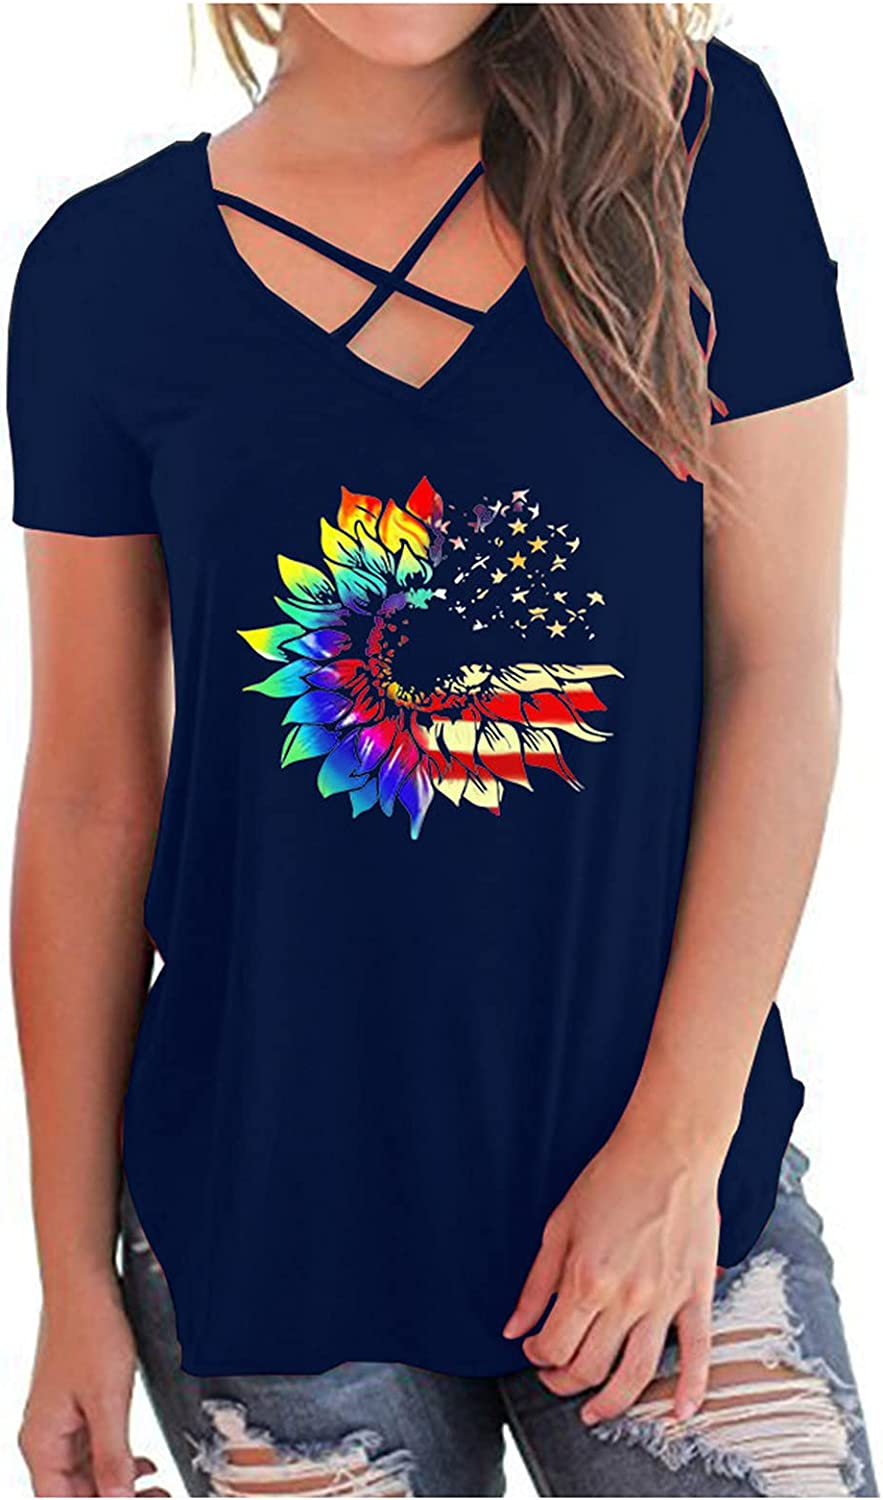 Sayhi Dealing outlet full price reduction Independence Day Flag America Neck V Top Print Sleeveless